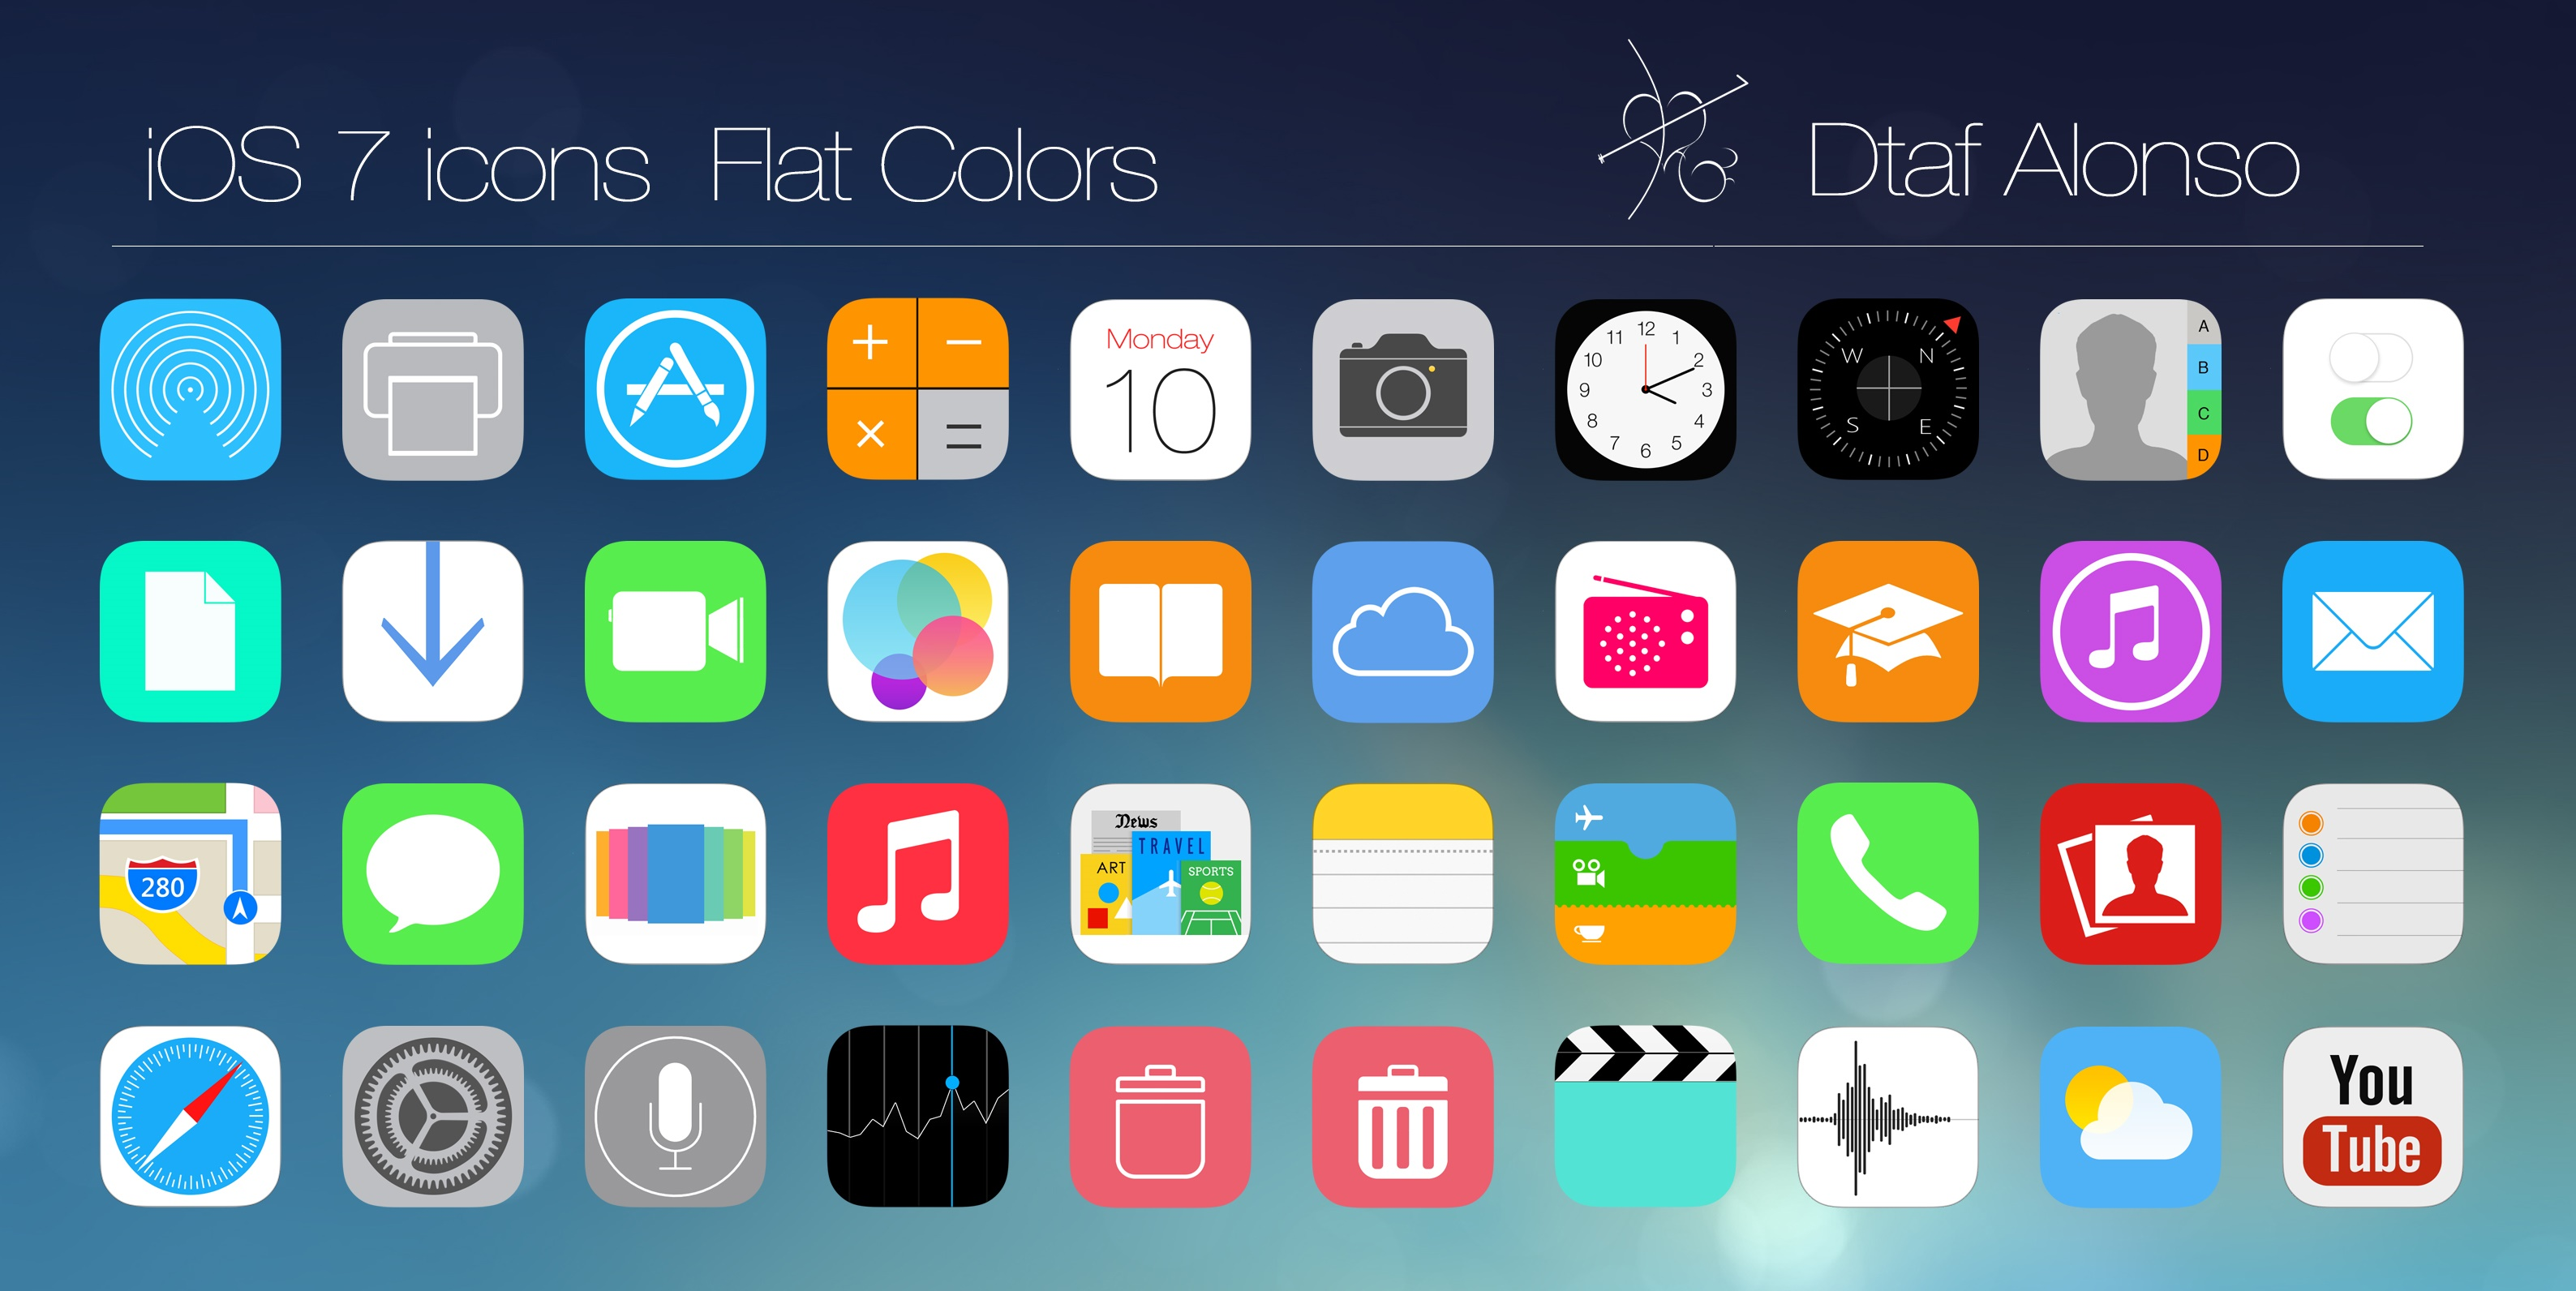 Ios 7 flat icons by dtafalonso on deviantart ios 7 flat icons by dtafalonso altavistaventures Choice Image